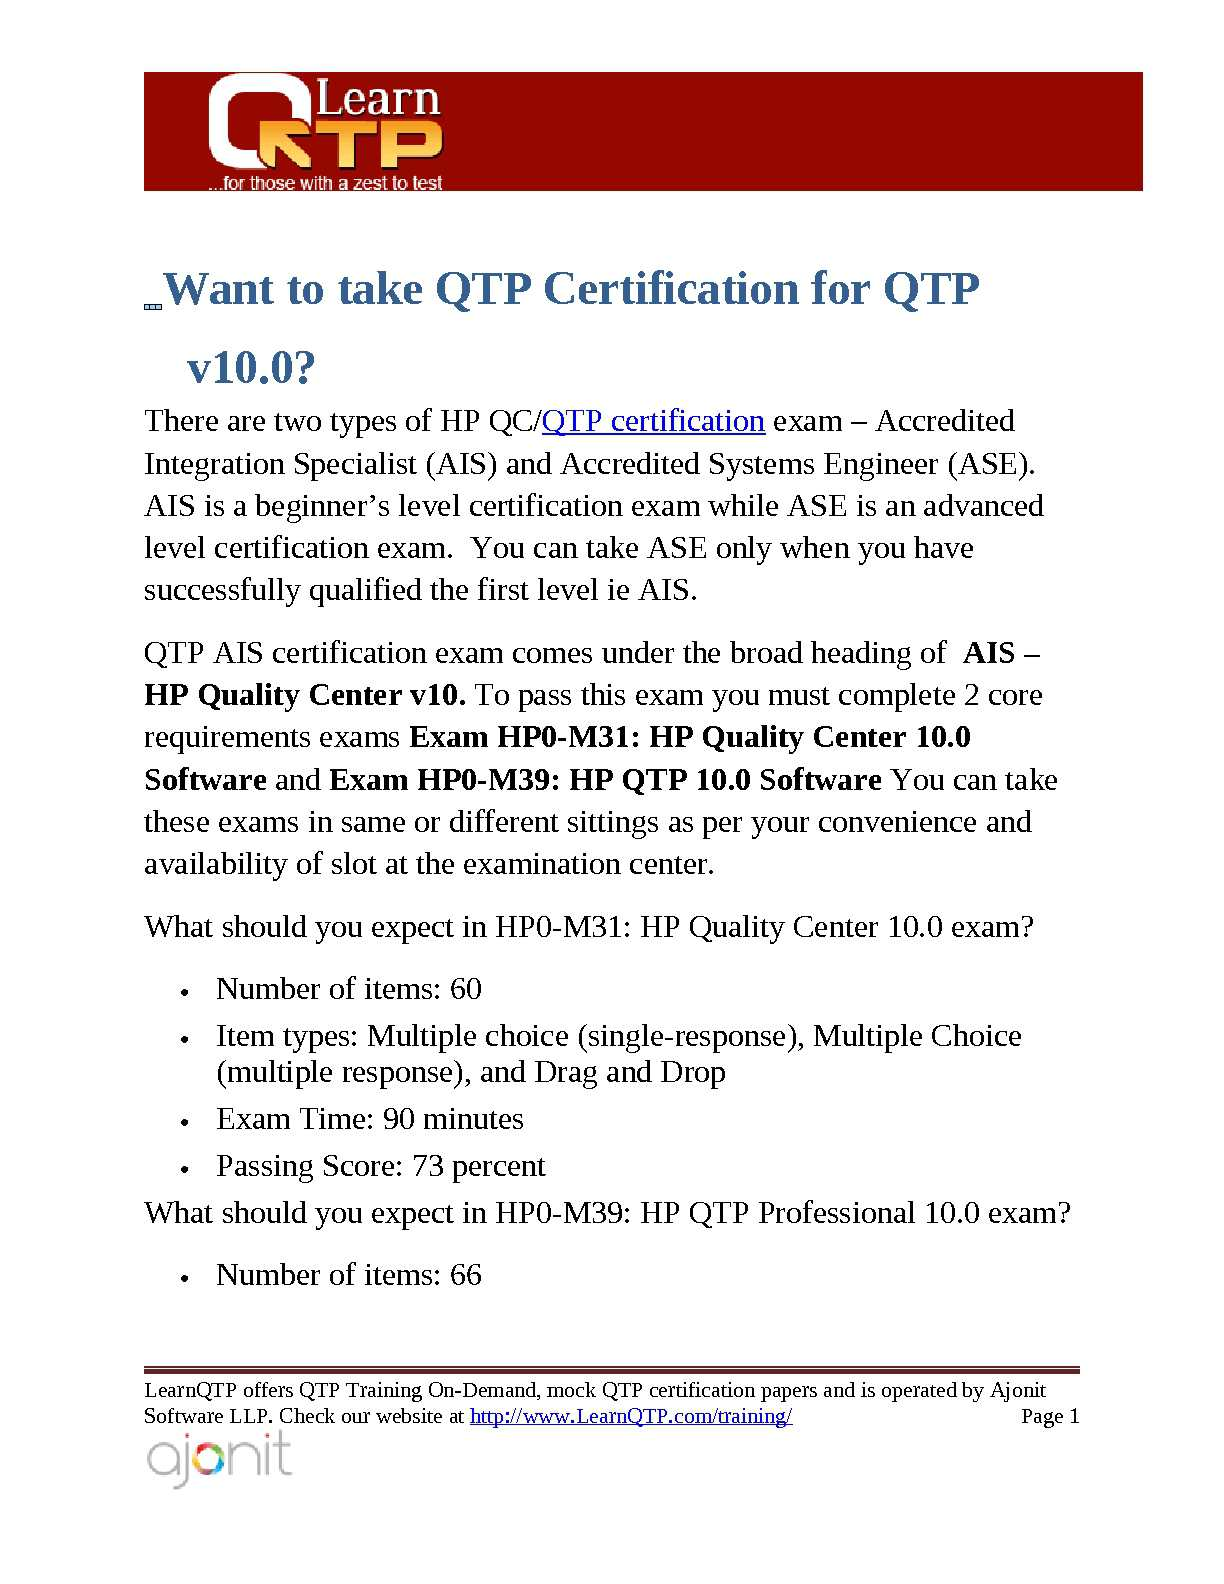 Calamo Step By Step Guide For Qtp Certification